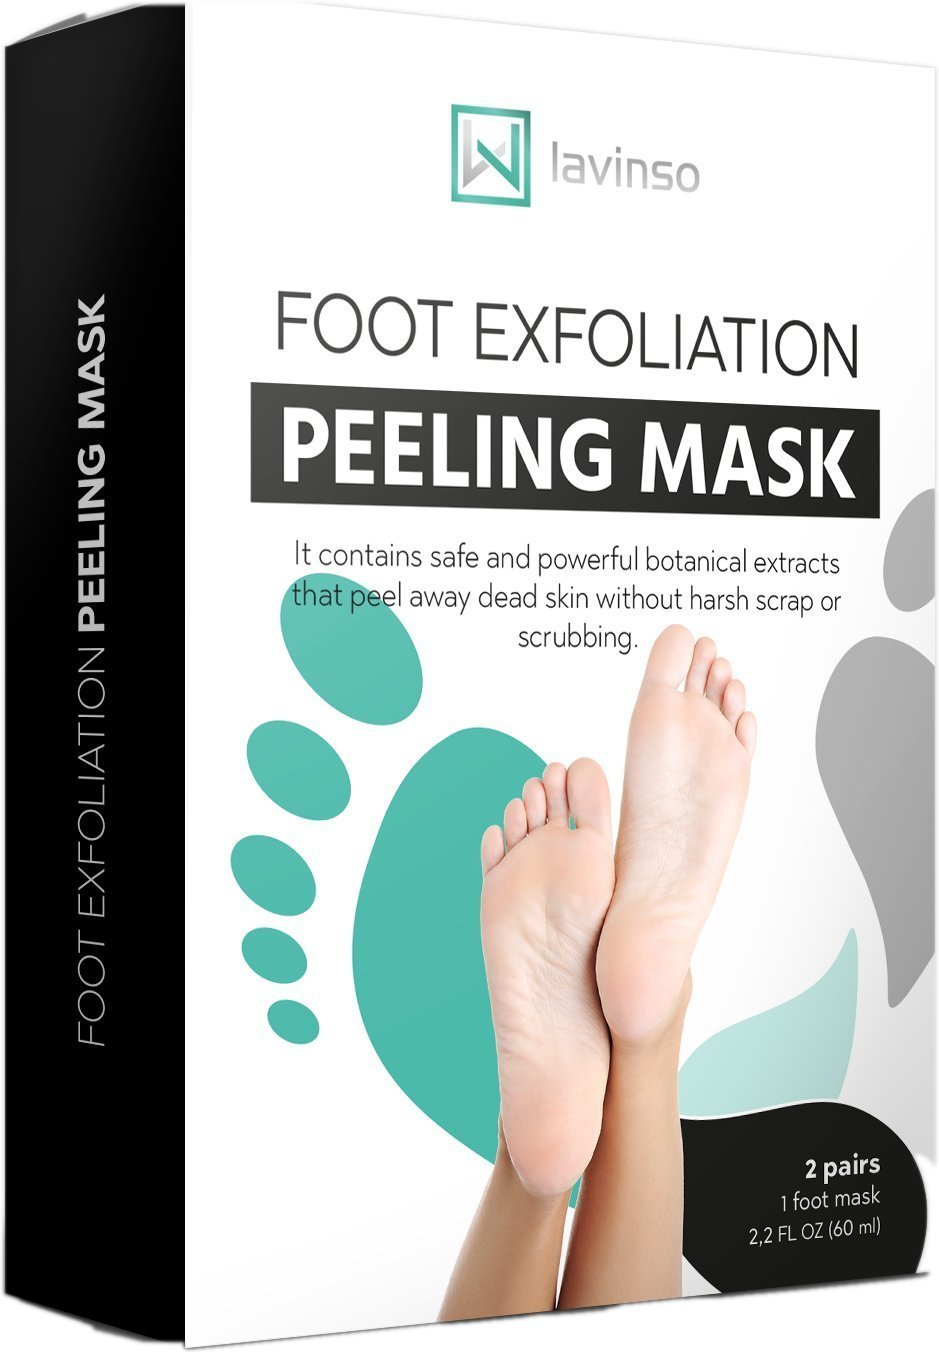 Foot Exfoliation Peeling Mask by Lavinso